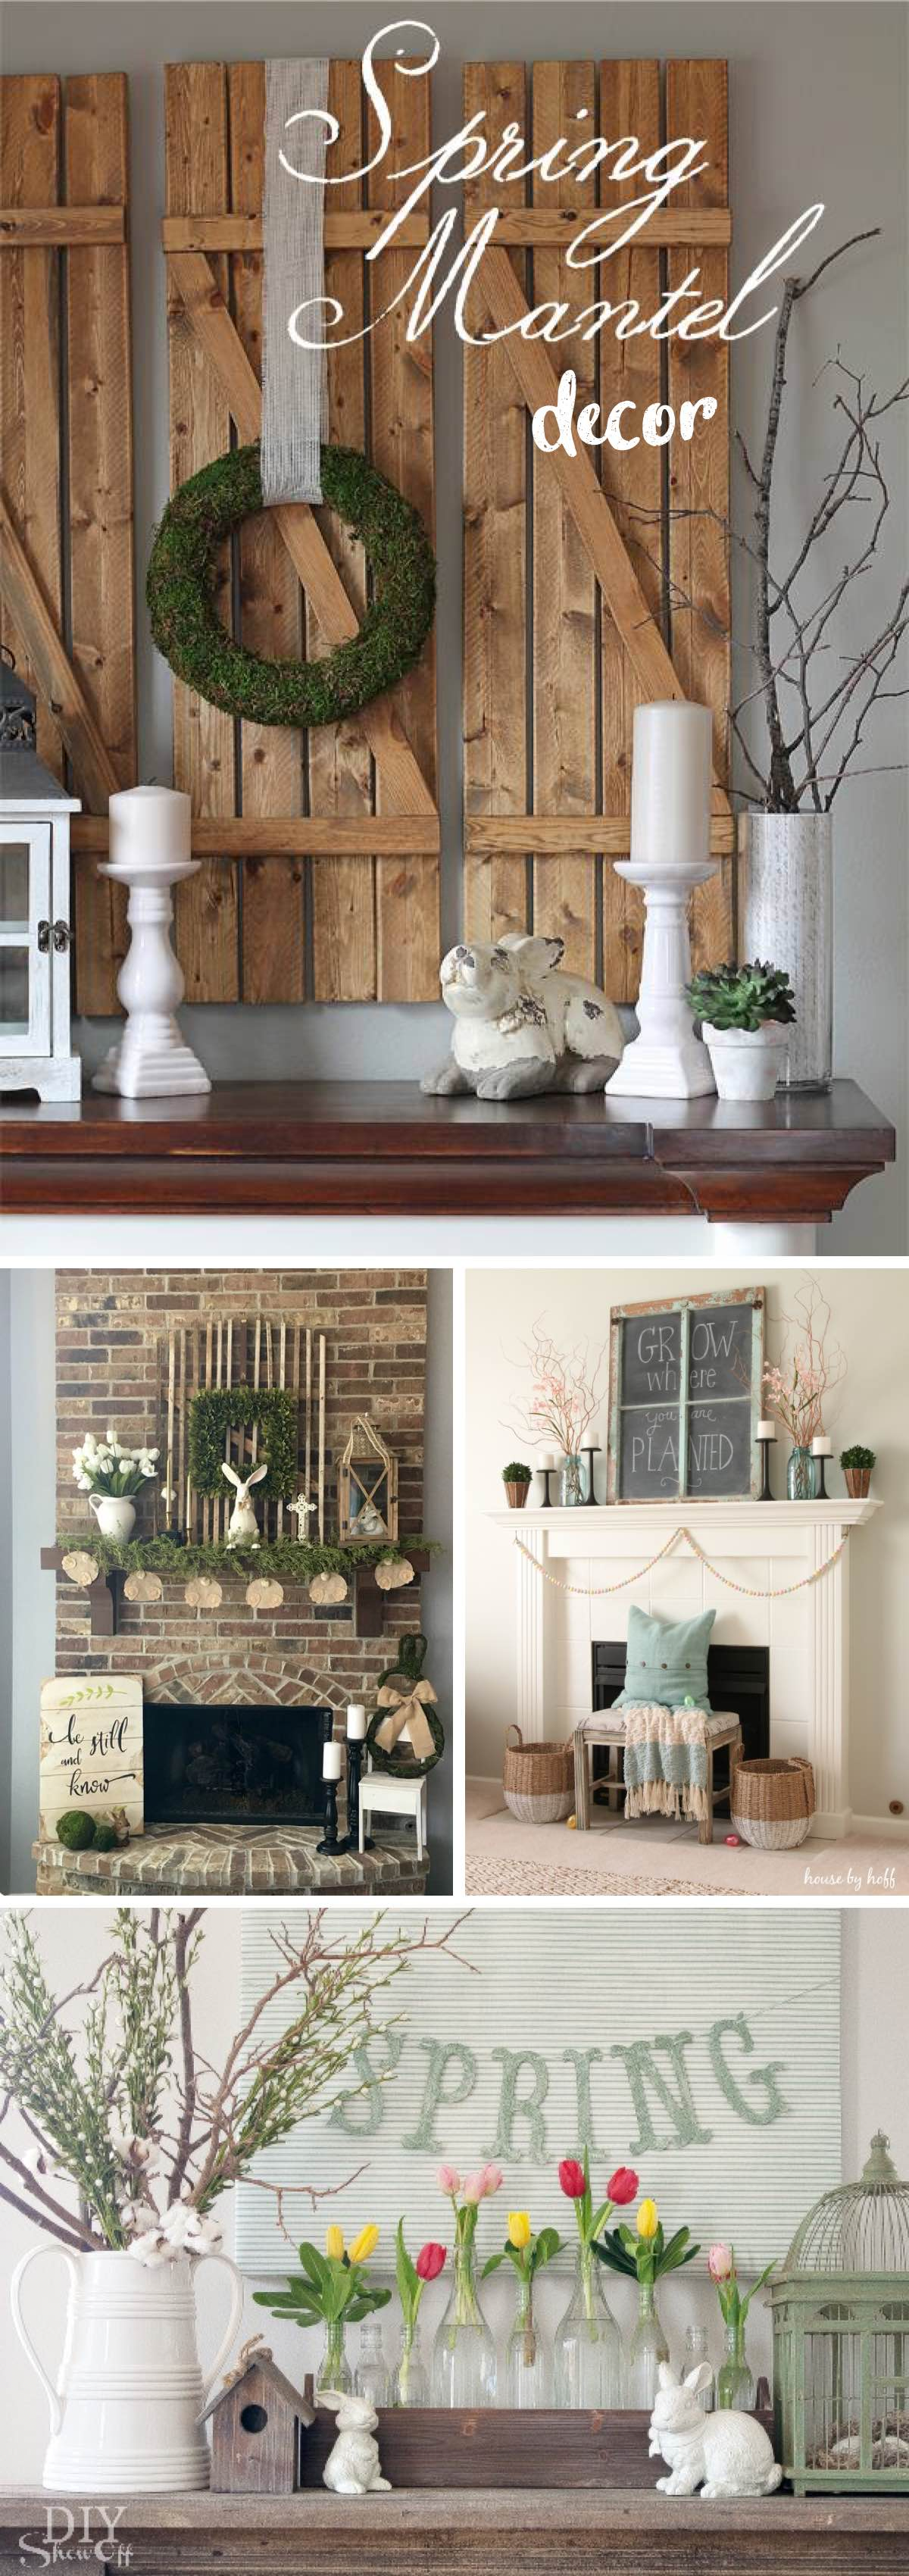 24 Spring Mantel Decor Ideas To Brighten up The Space with ...